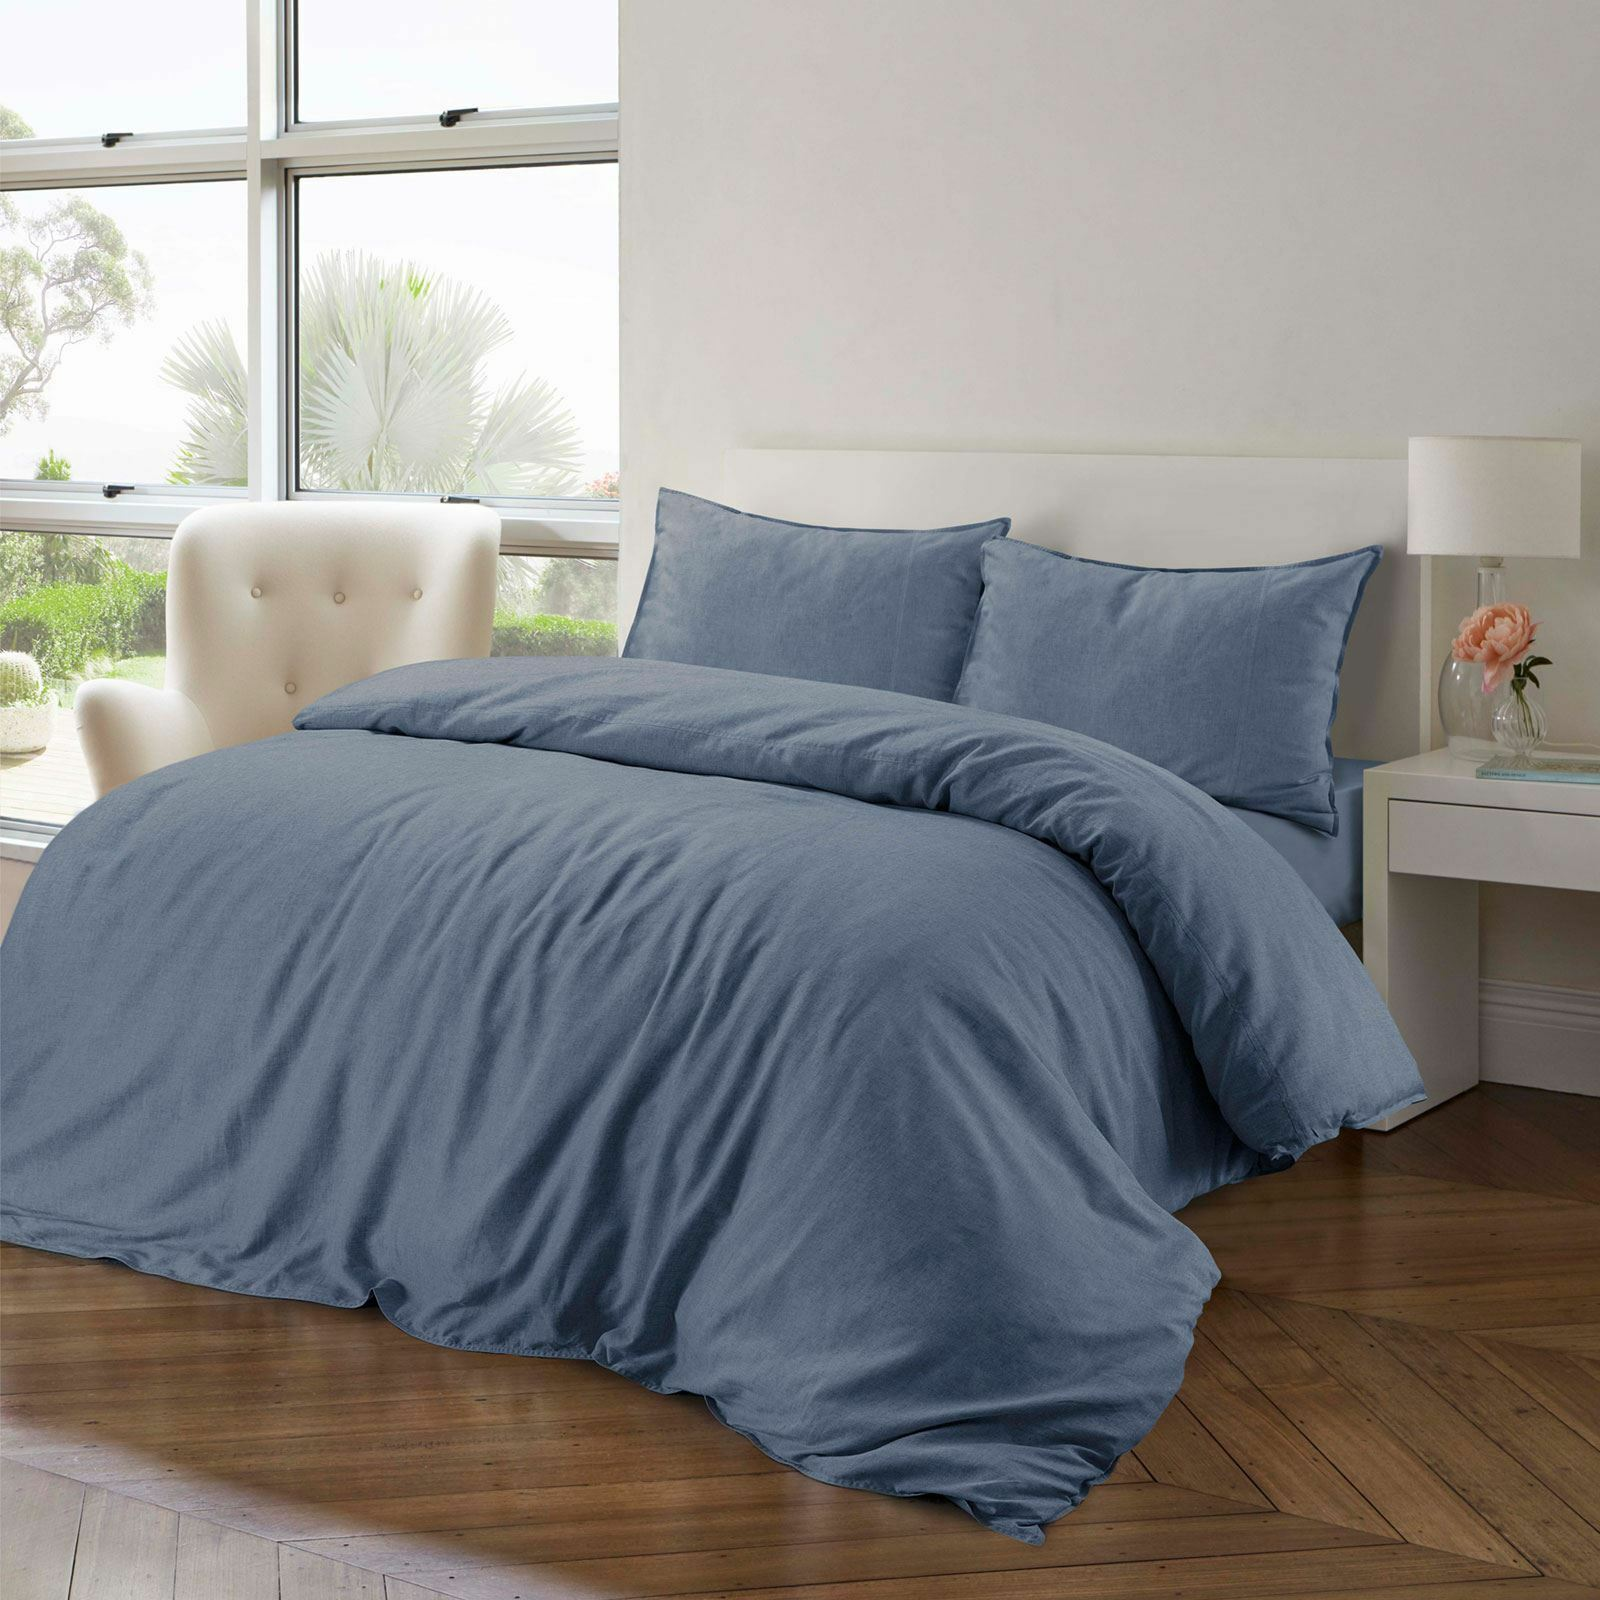 Duvet Cover Quilt Bedding Set Soft Blau Cotton Linen Single Double King Größe